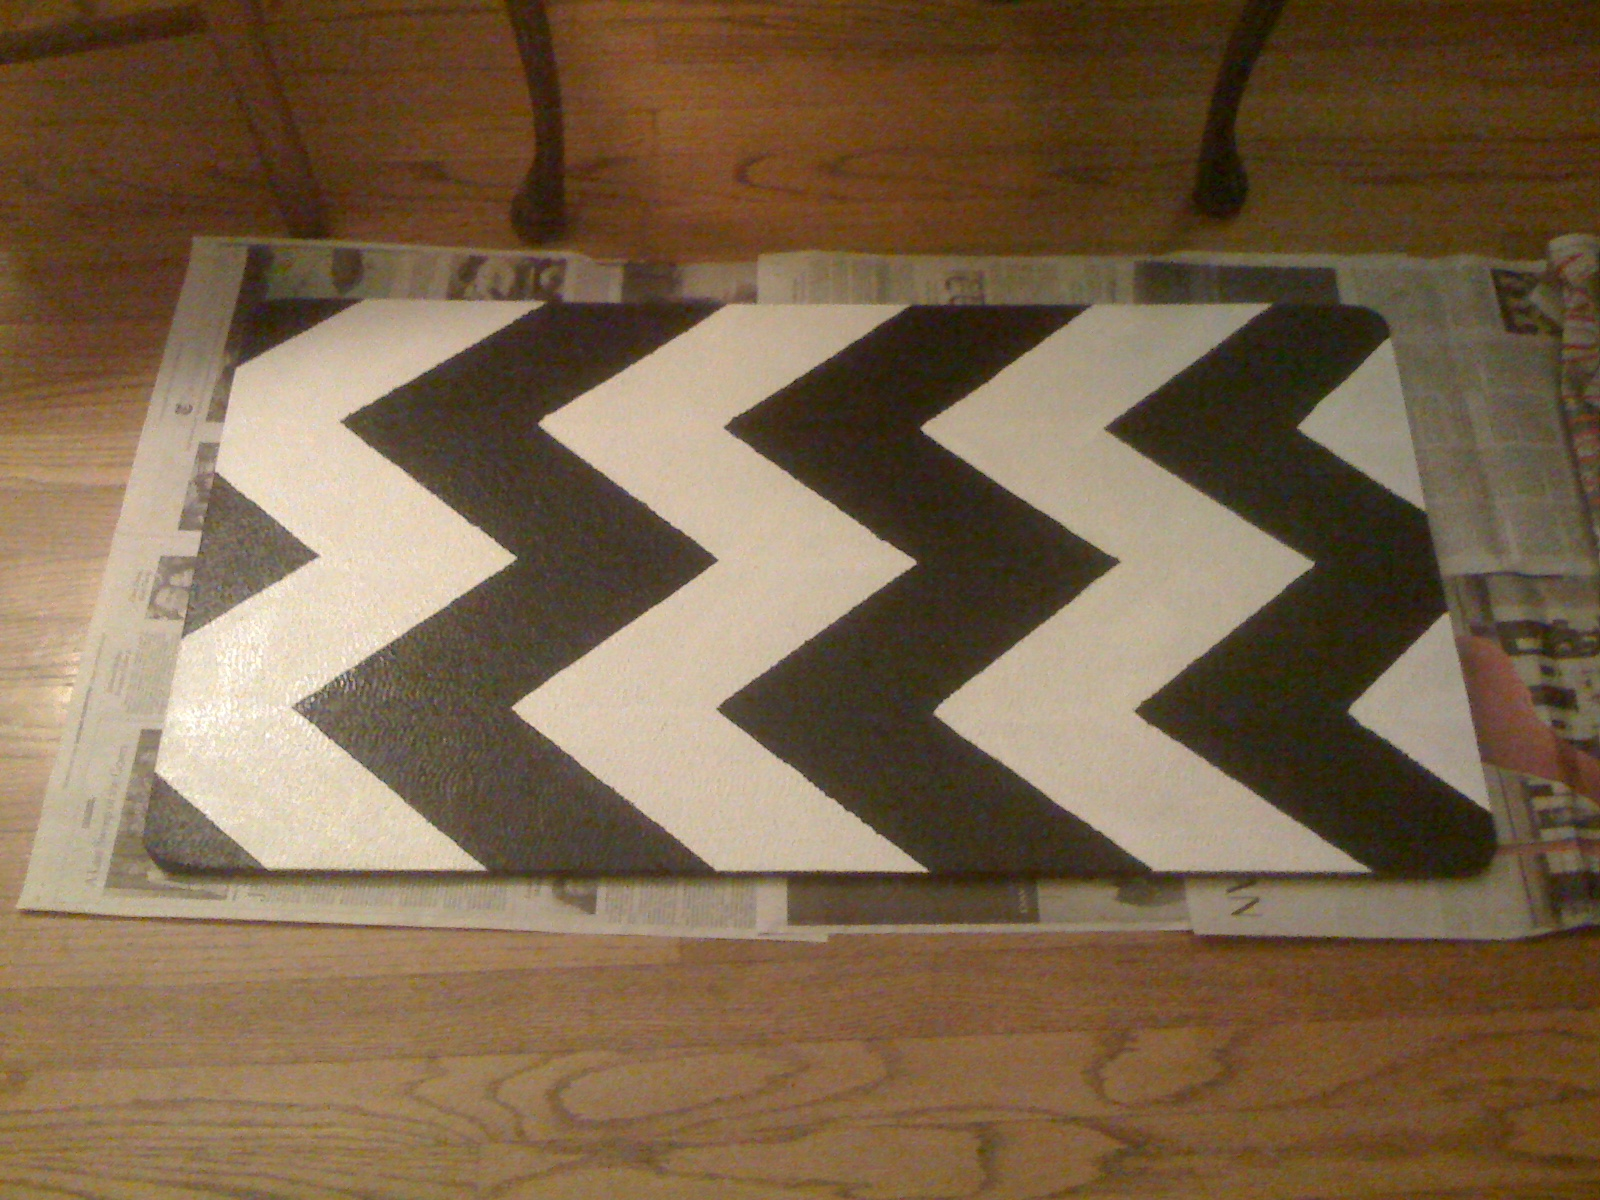 diy painting chevron stripes on my kitchen rug mary wiseman designs